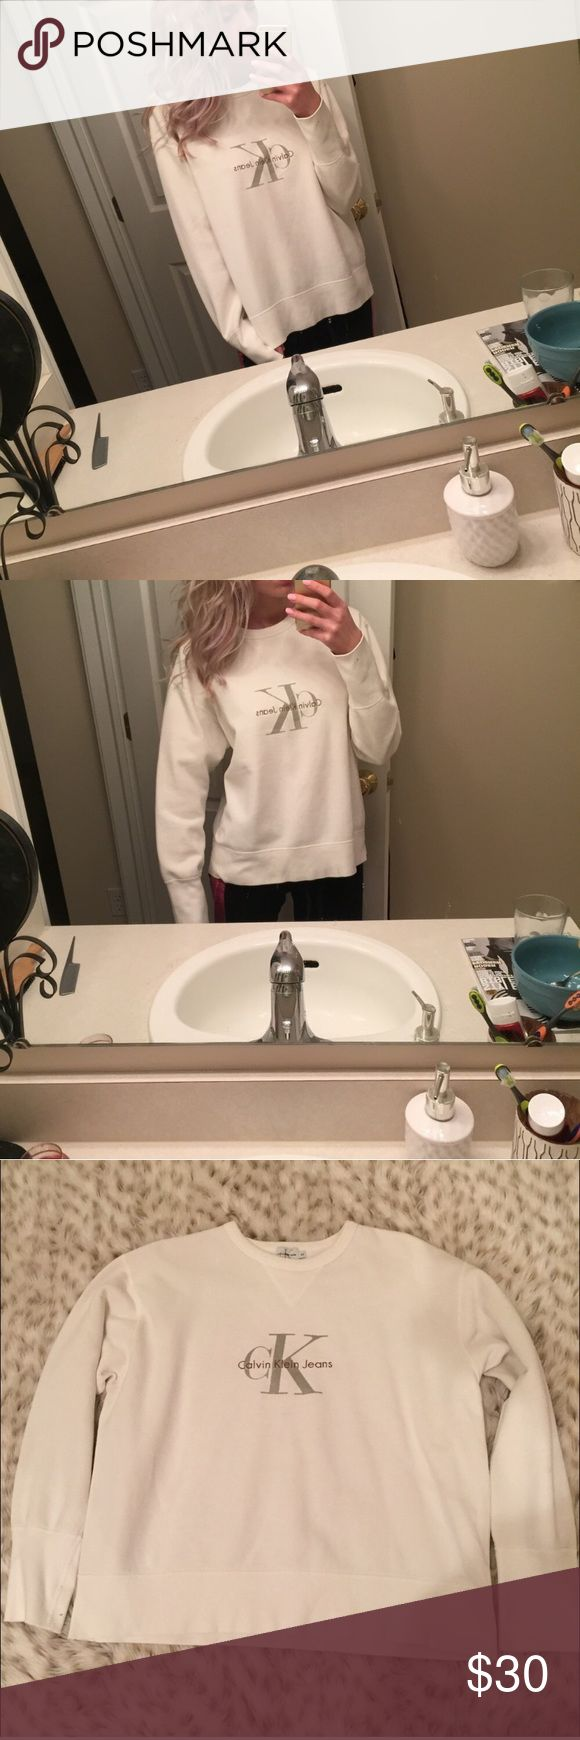 Vintage Calvin Klein Pullover Sweatshirt Vintage Calvin Klein size medium sweatshirt! Trendy and on point! Overall great condition besides on right sleeve at the end! Small little markings. See pic for details. Not noticeable when wearing! Great with jeans or leggings! Unisex! Calvin Klein Tops Sweatshirts & Hoodies